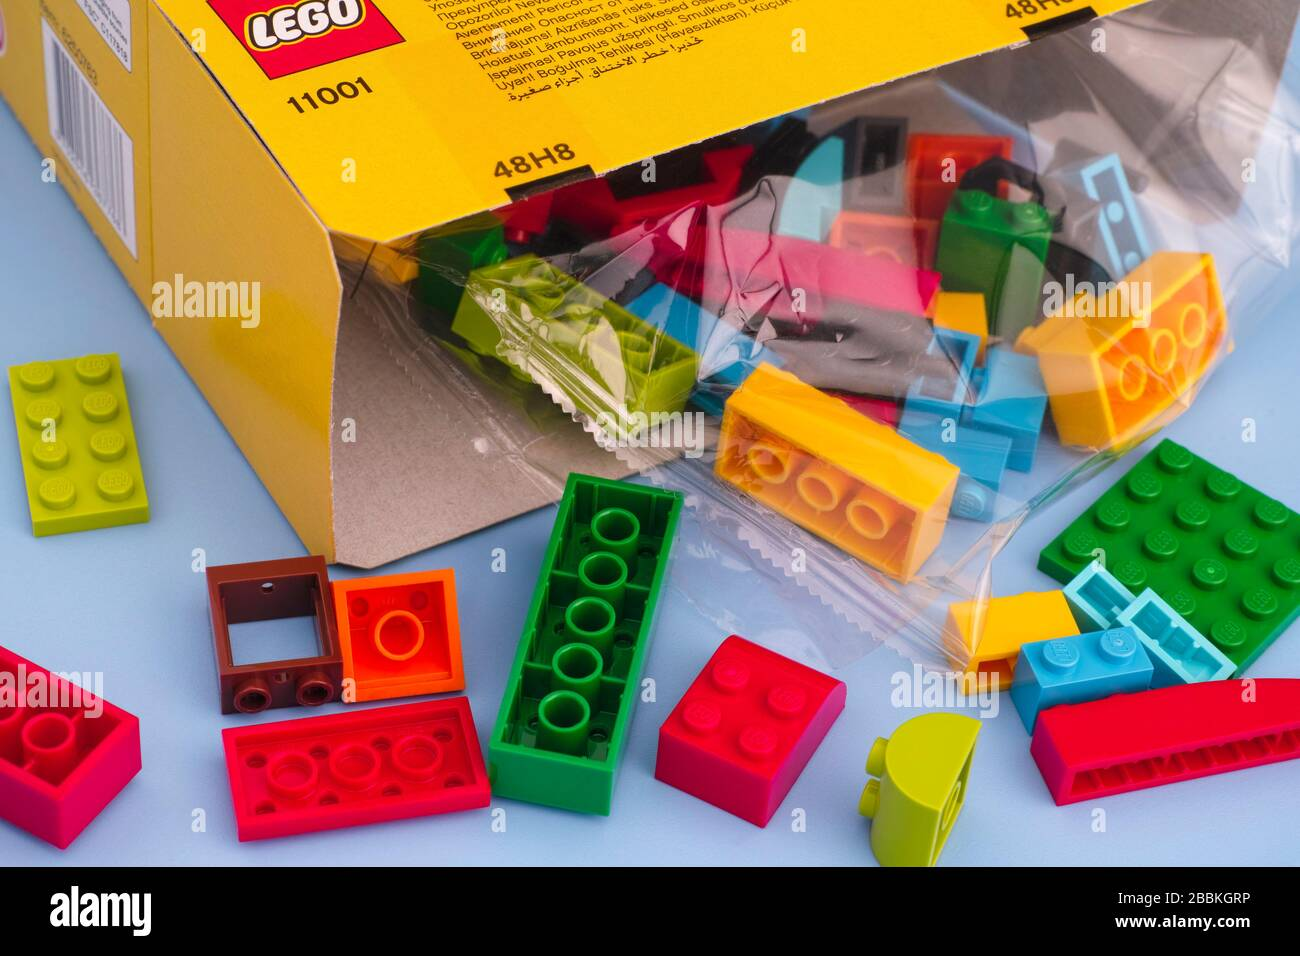 Assorted Lego Bricks Pieces Red Lego Wheel barrow for Minifigures or display